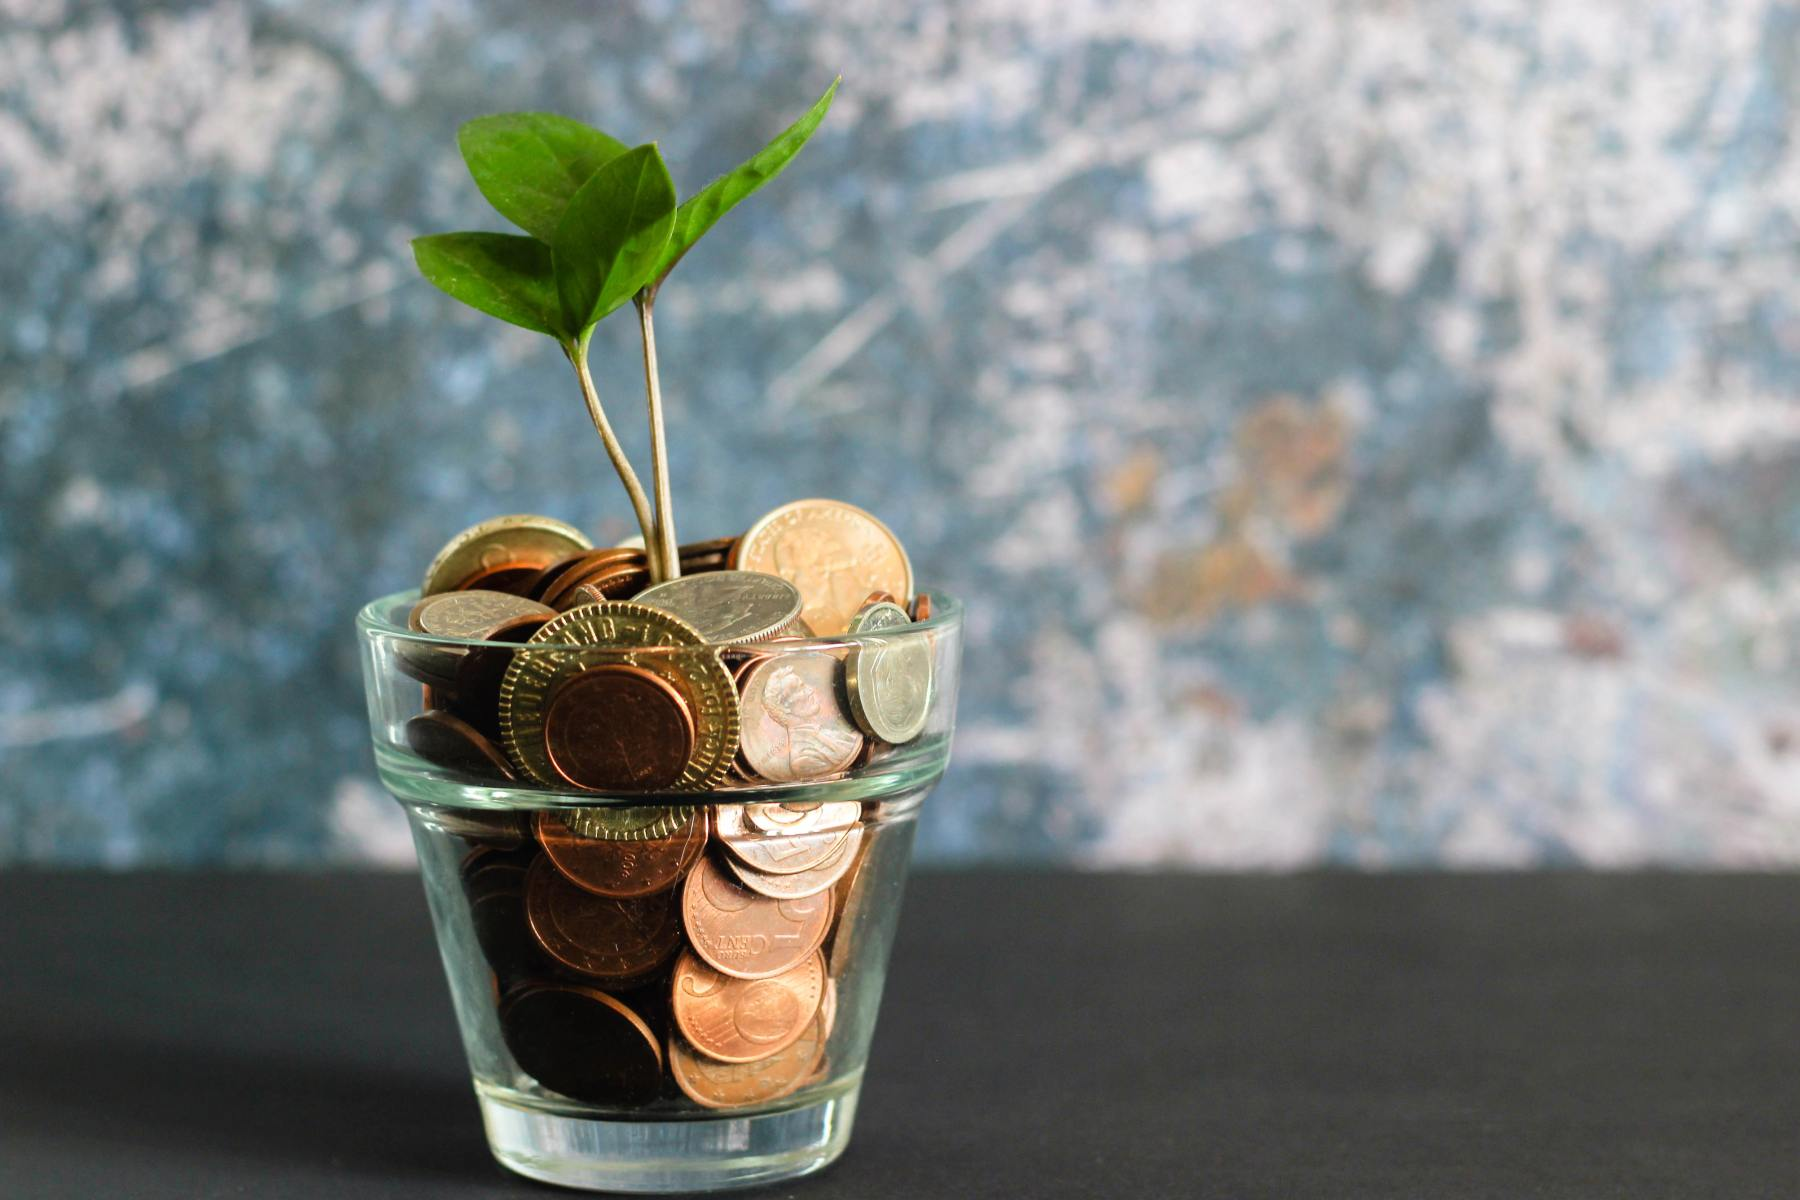 Glass of coins with green plant